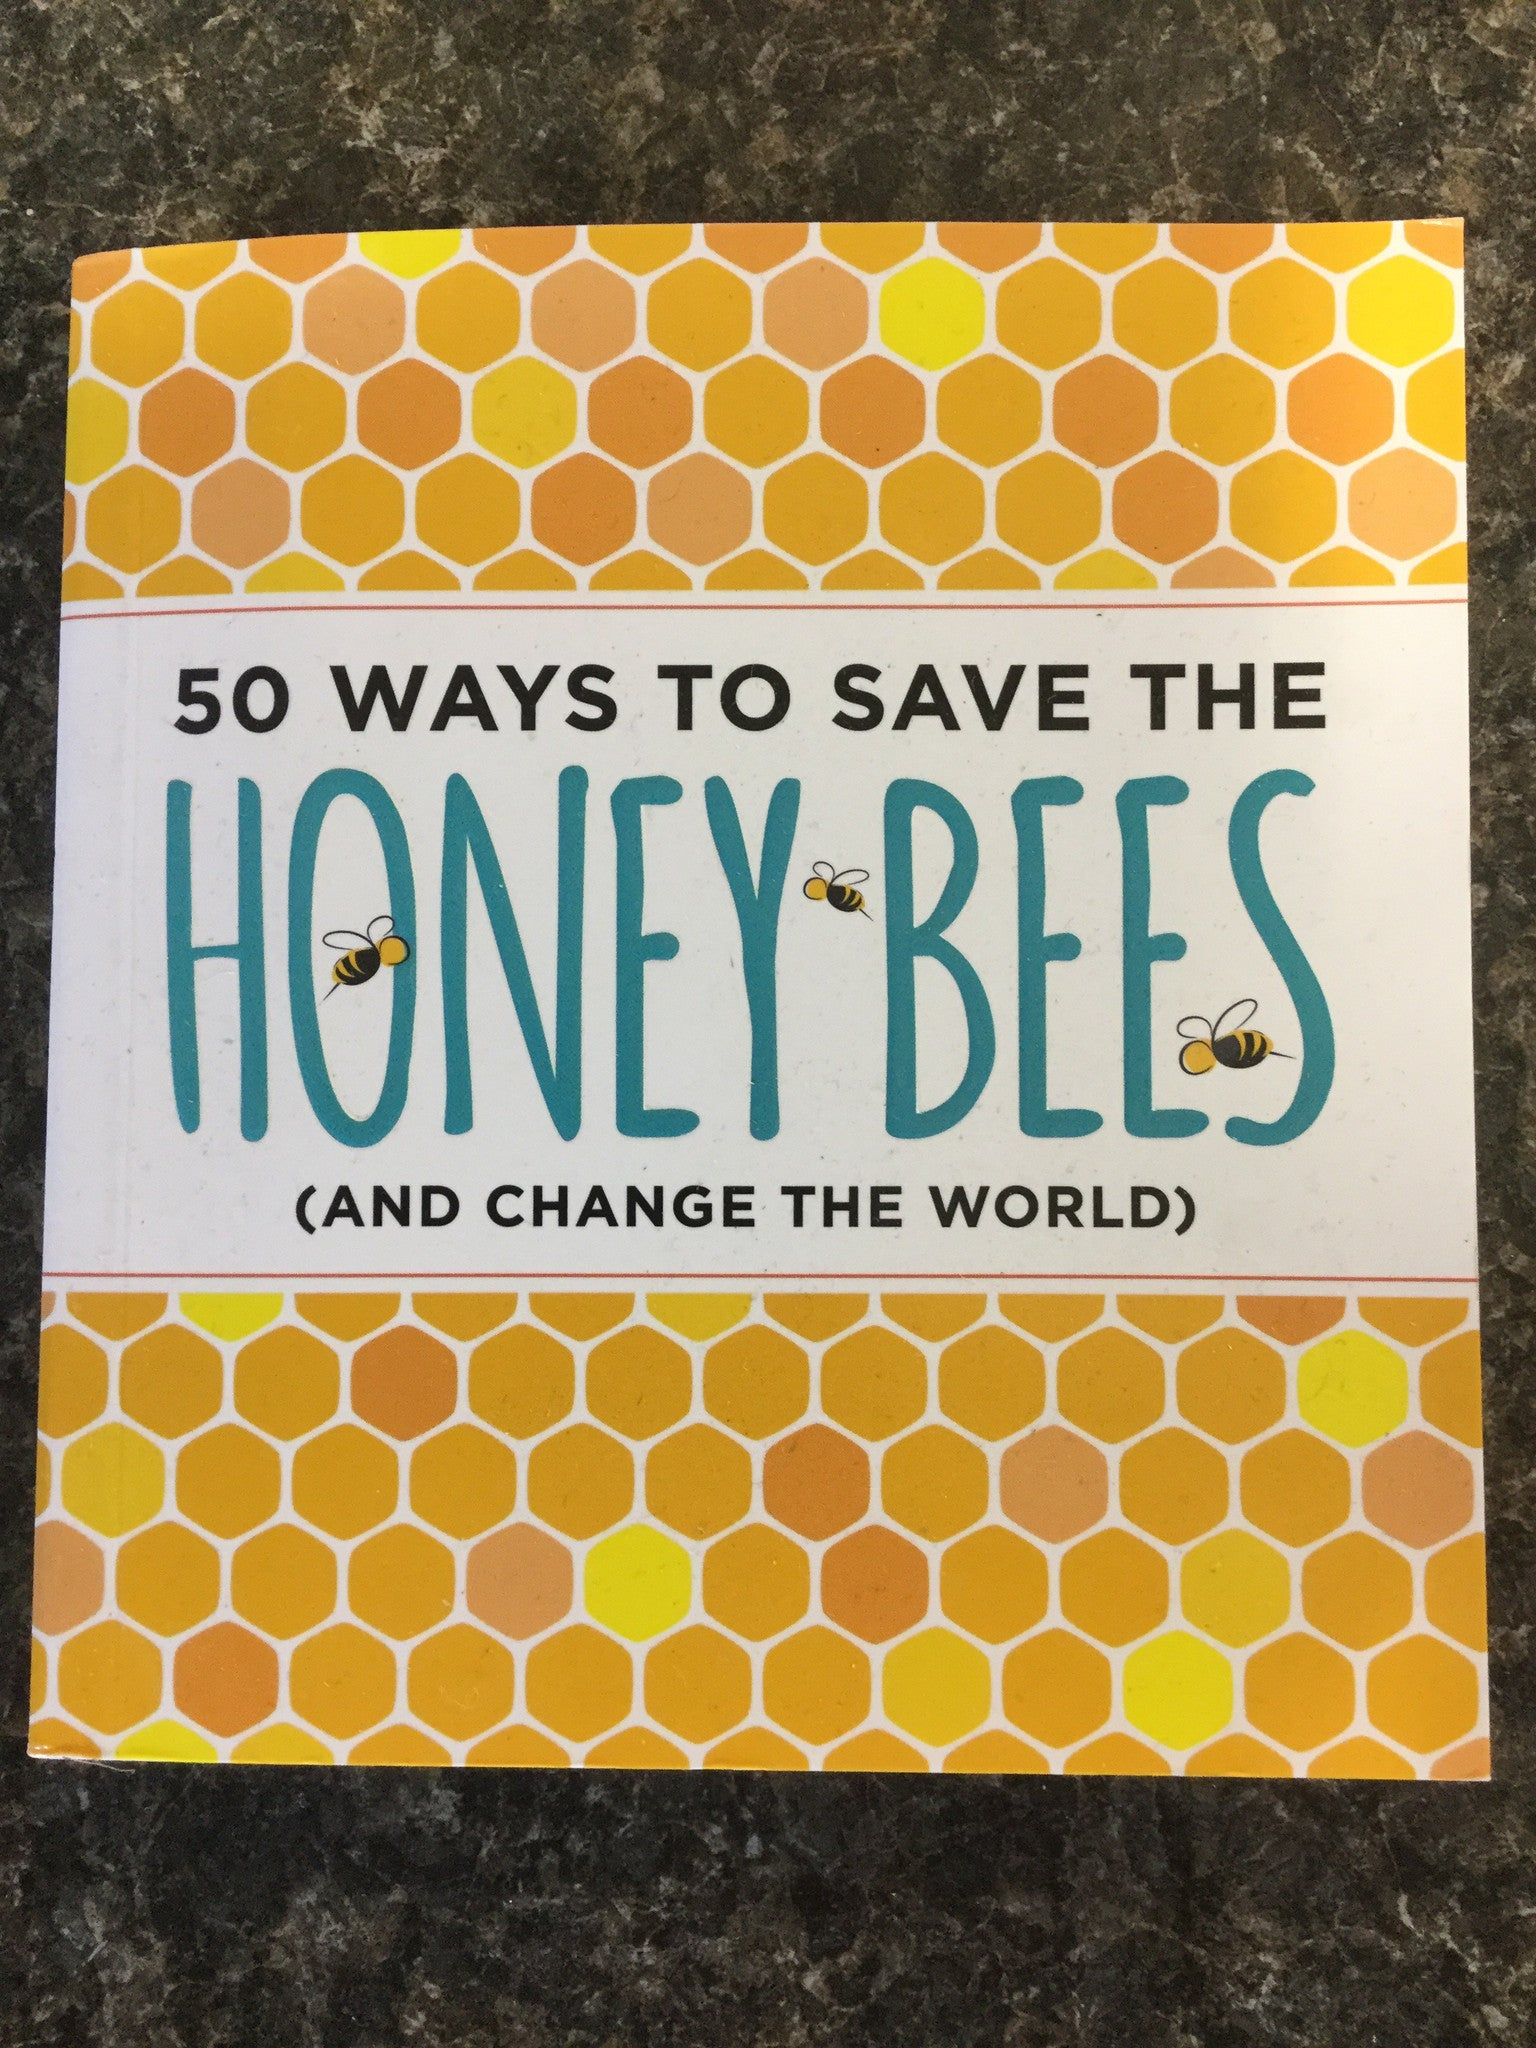 Watch How to Help Save Honey Bees video